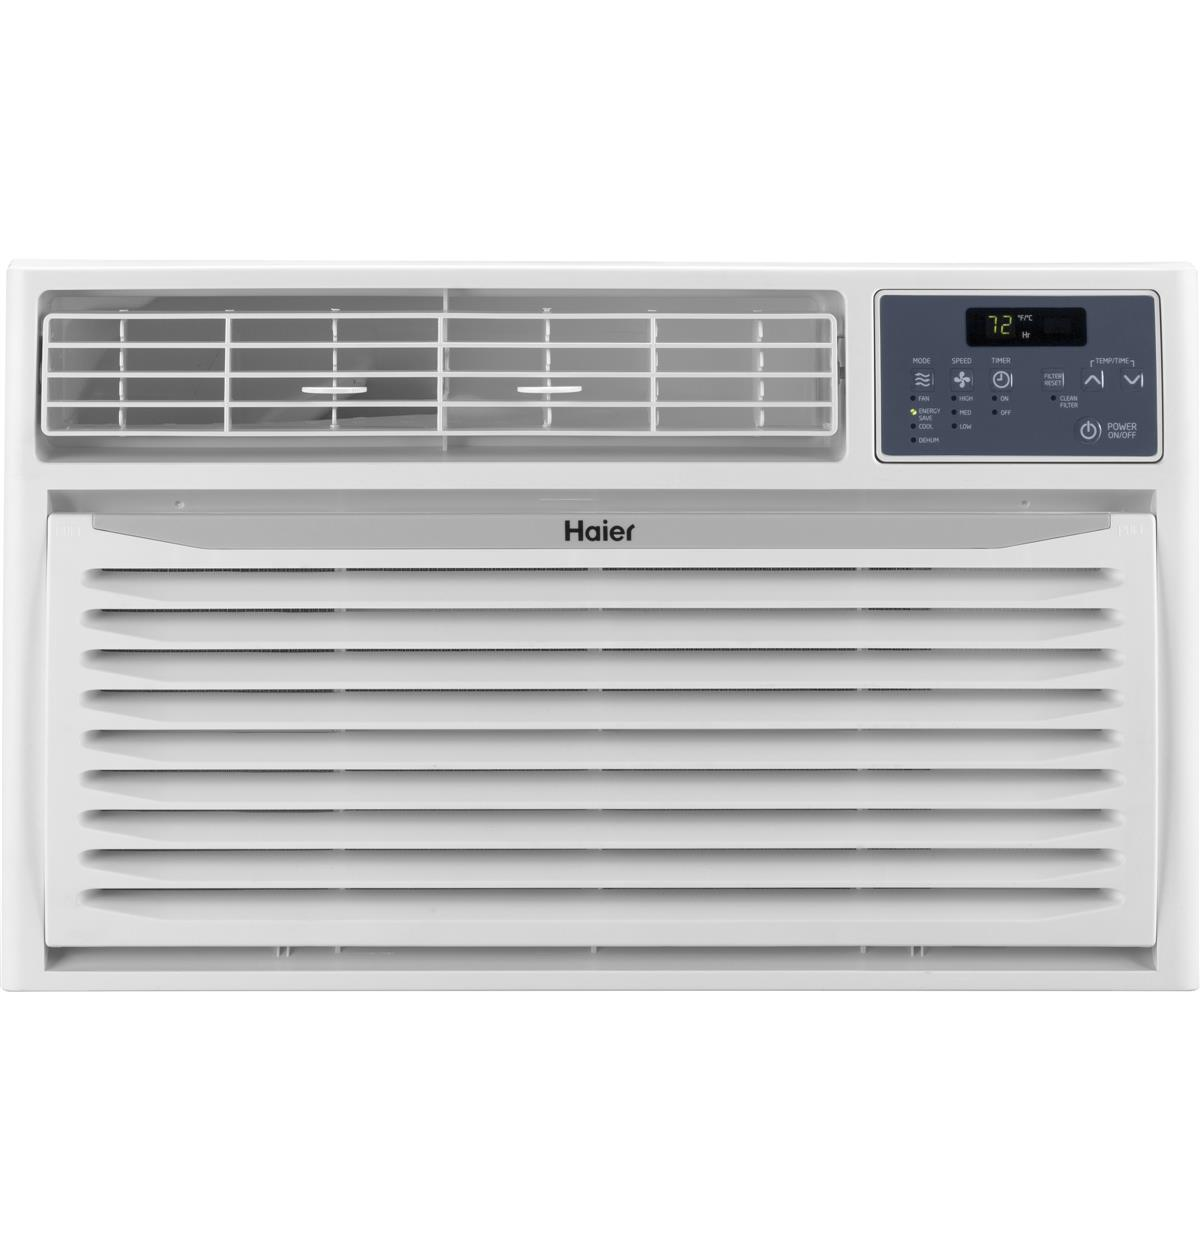 Peachy Haier Air Conditioners Ductless Portable Window Unit Through Wiring Cloud Filiciilluminateatxorg